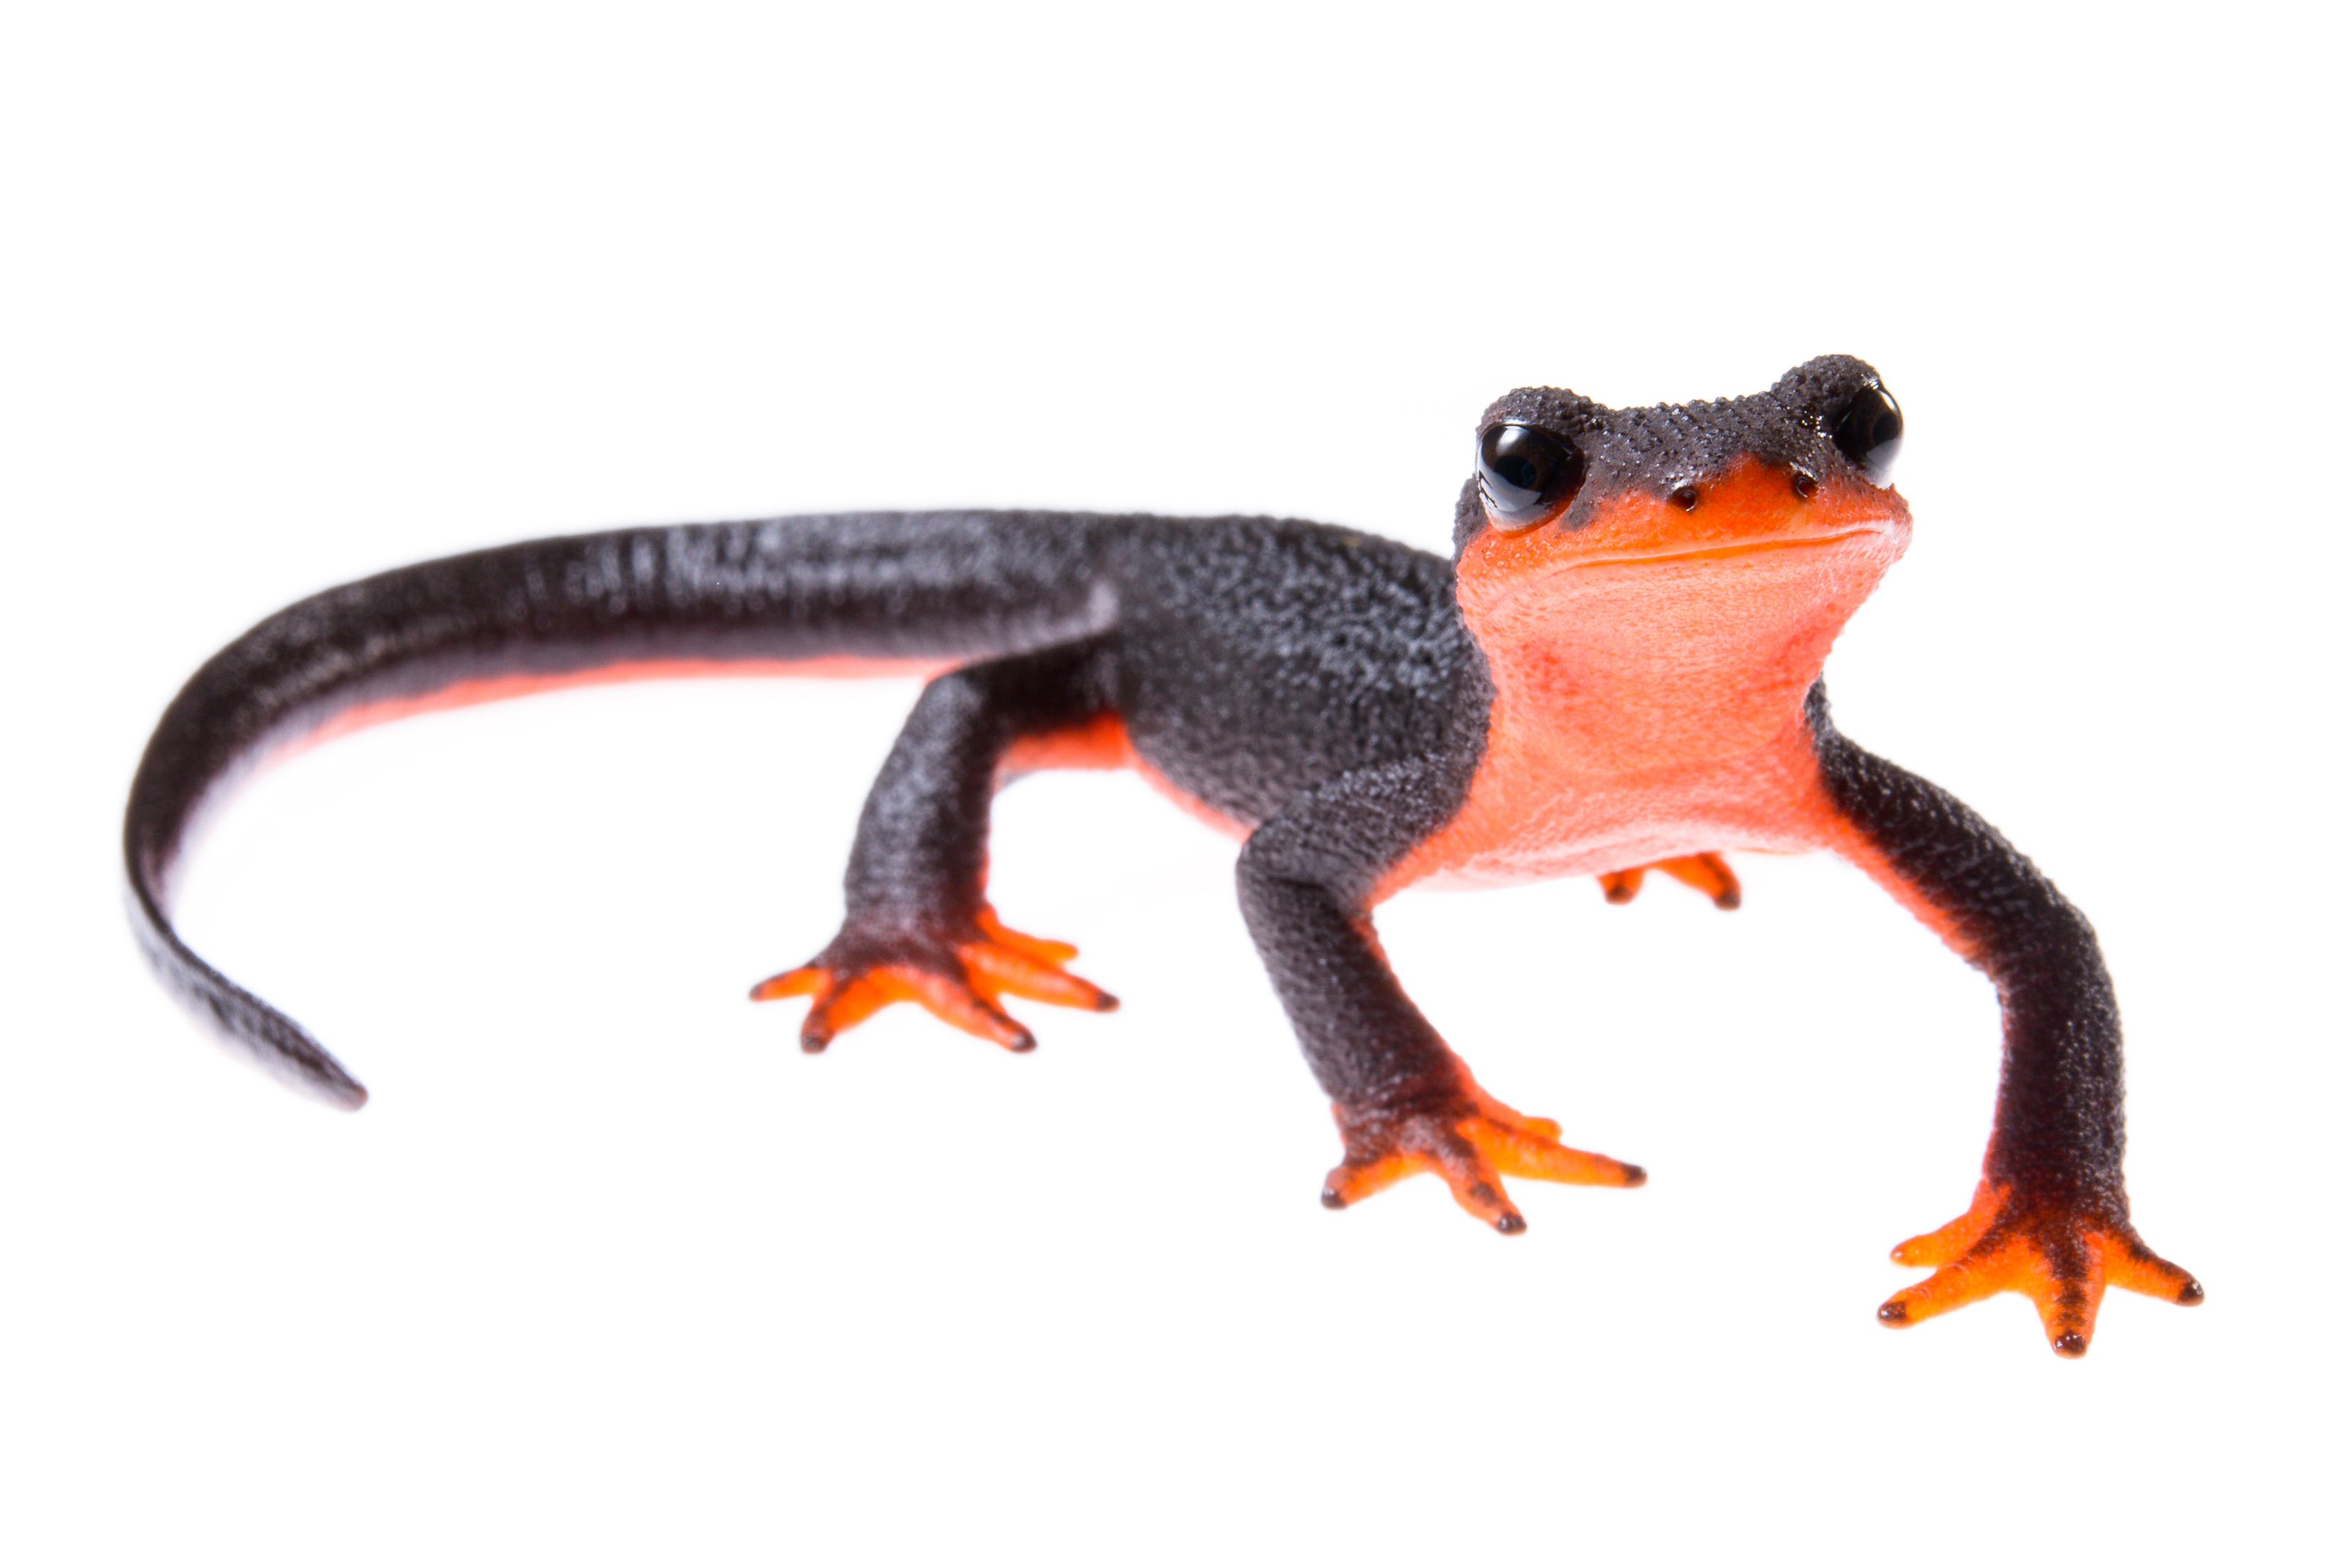 The red-bellied newt, common along the coast in northern California, migrates from upland areas to breed in streams in the spring. It is one of hundreds of species of salamanders endemic to North America threatened by an emerging infectious pathogen.